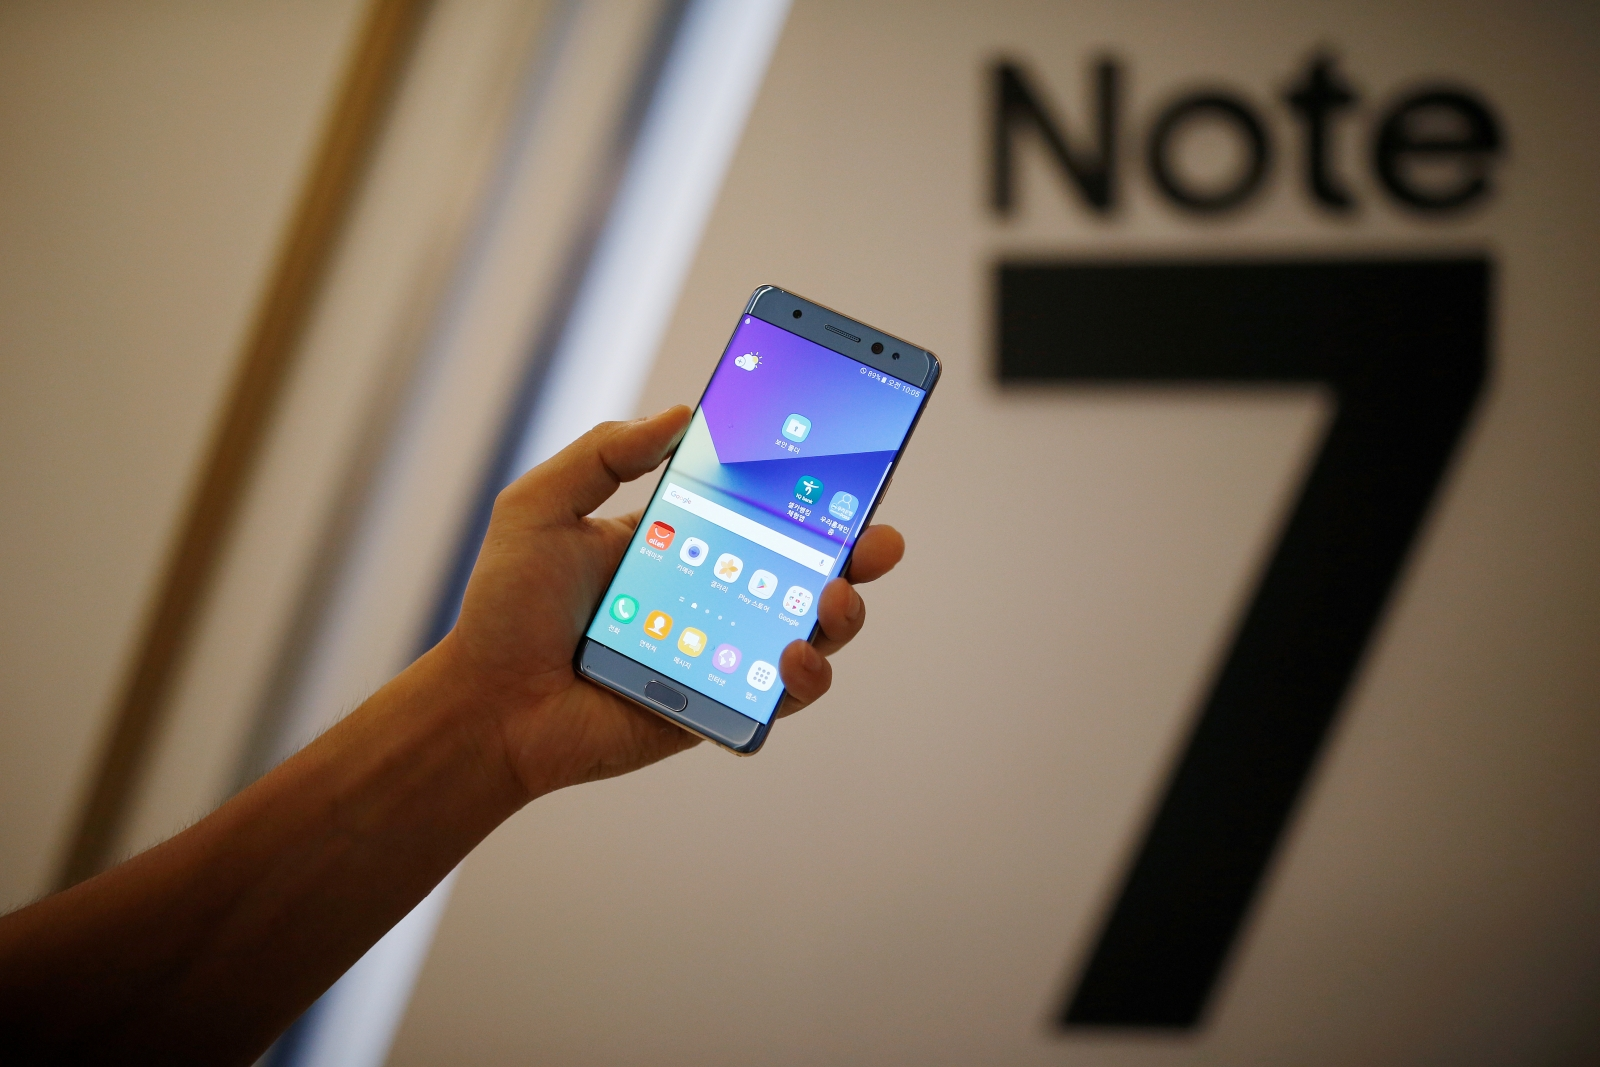 Galaxy Note 7 replacement programme